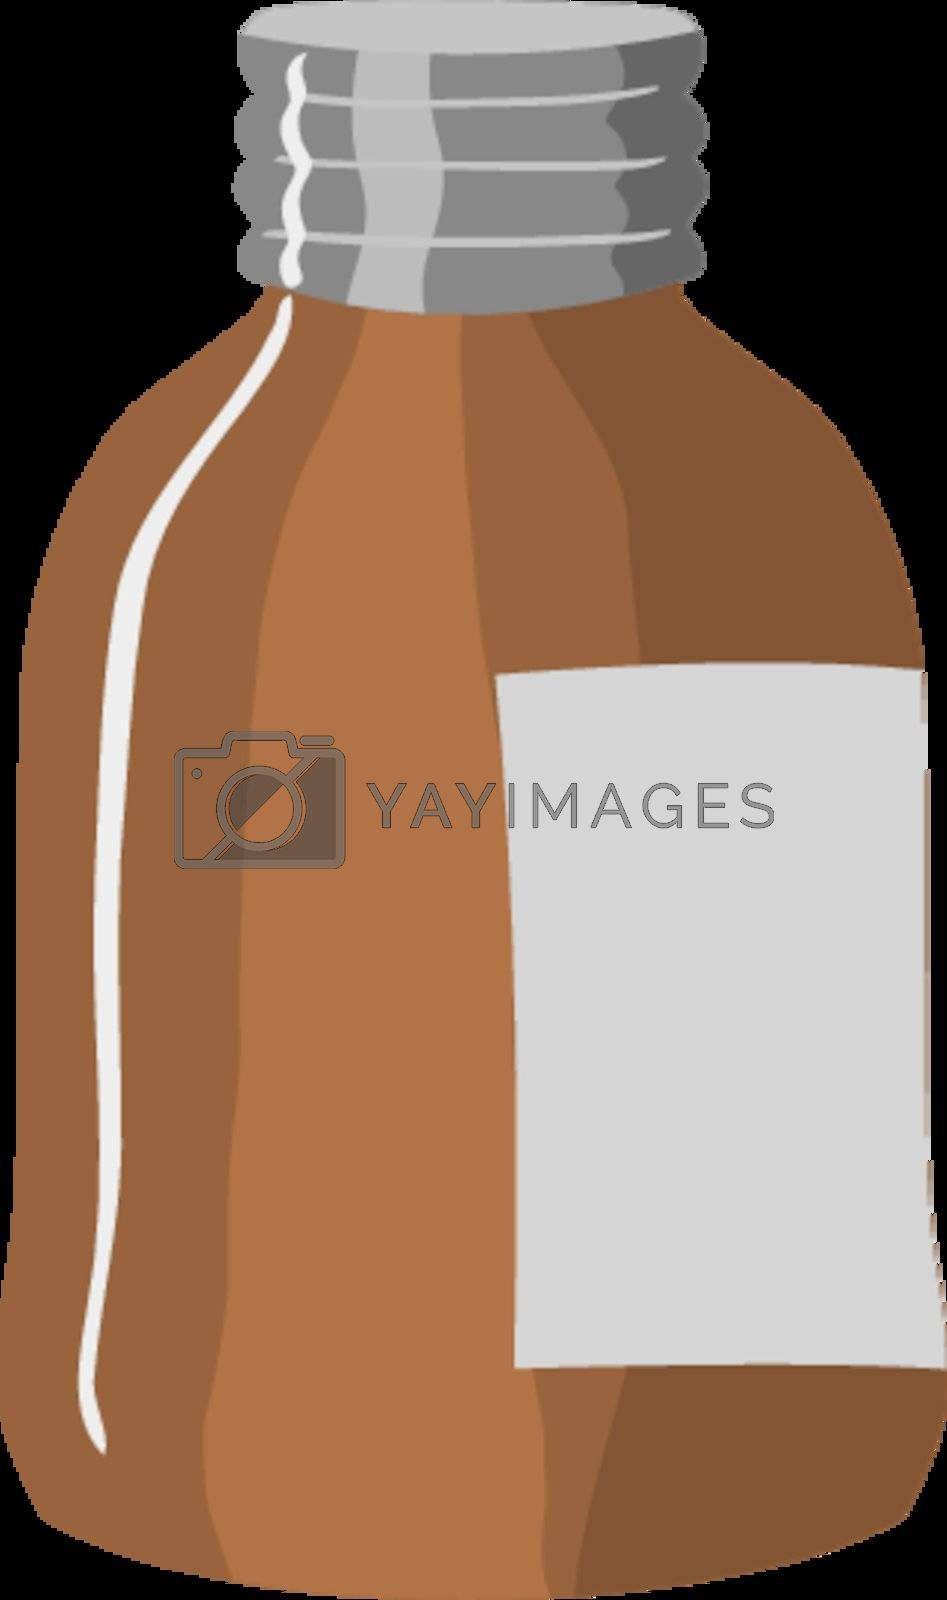 Royalty free image of Medicine bottle by Perysty